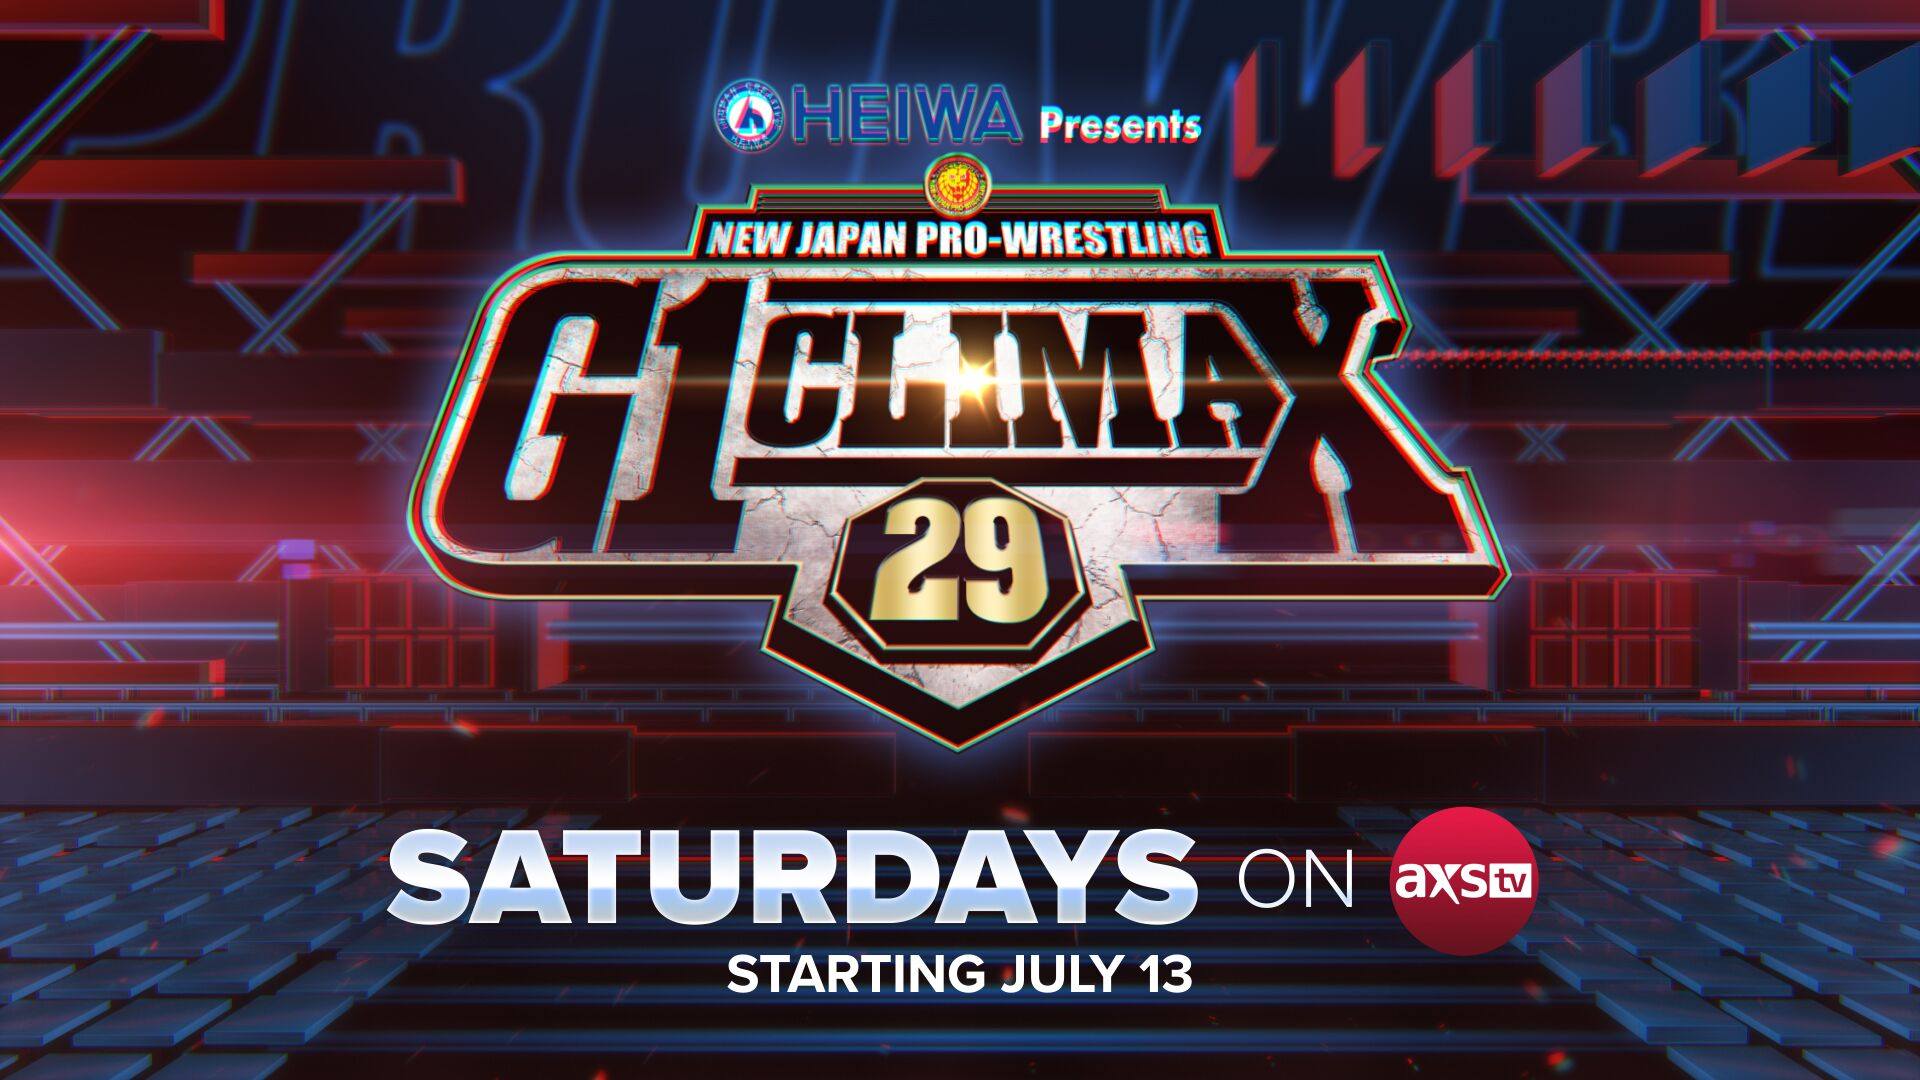 NJPW & WOW to air on Saturdays from July 13 on AXS TV